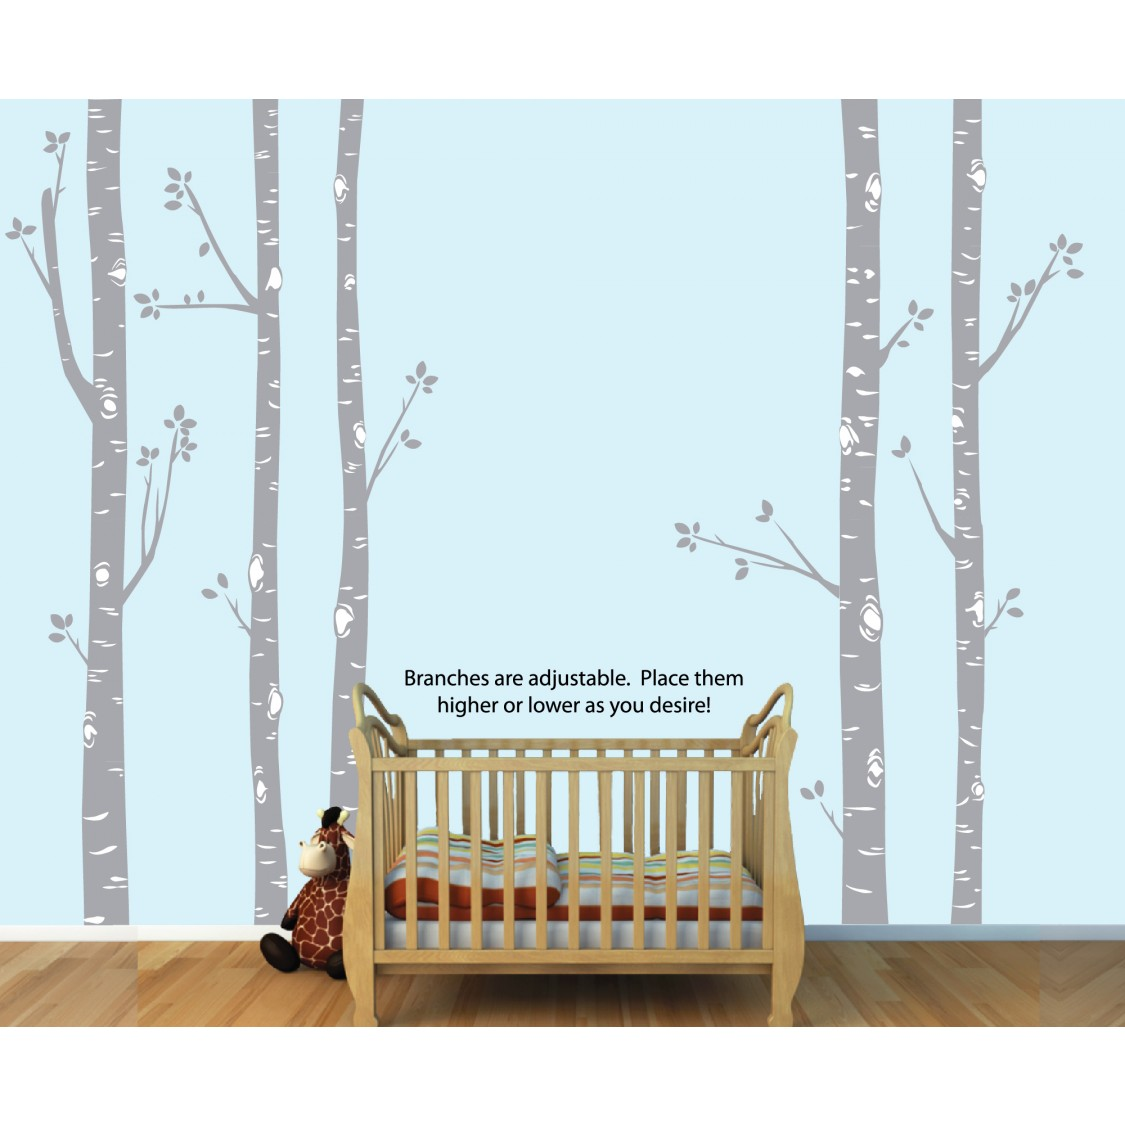 Birch Tree Wall Decal and Tree Wall Decorations For Kids Rooms